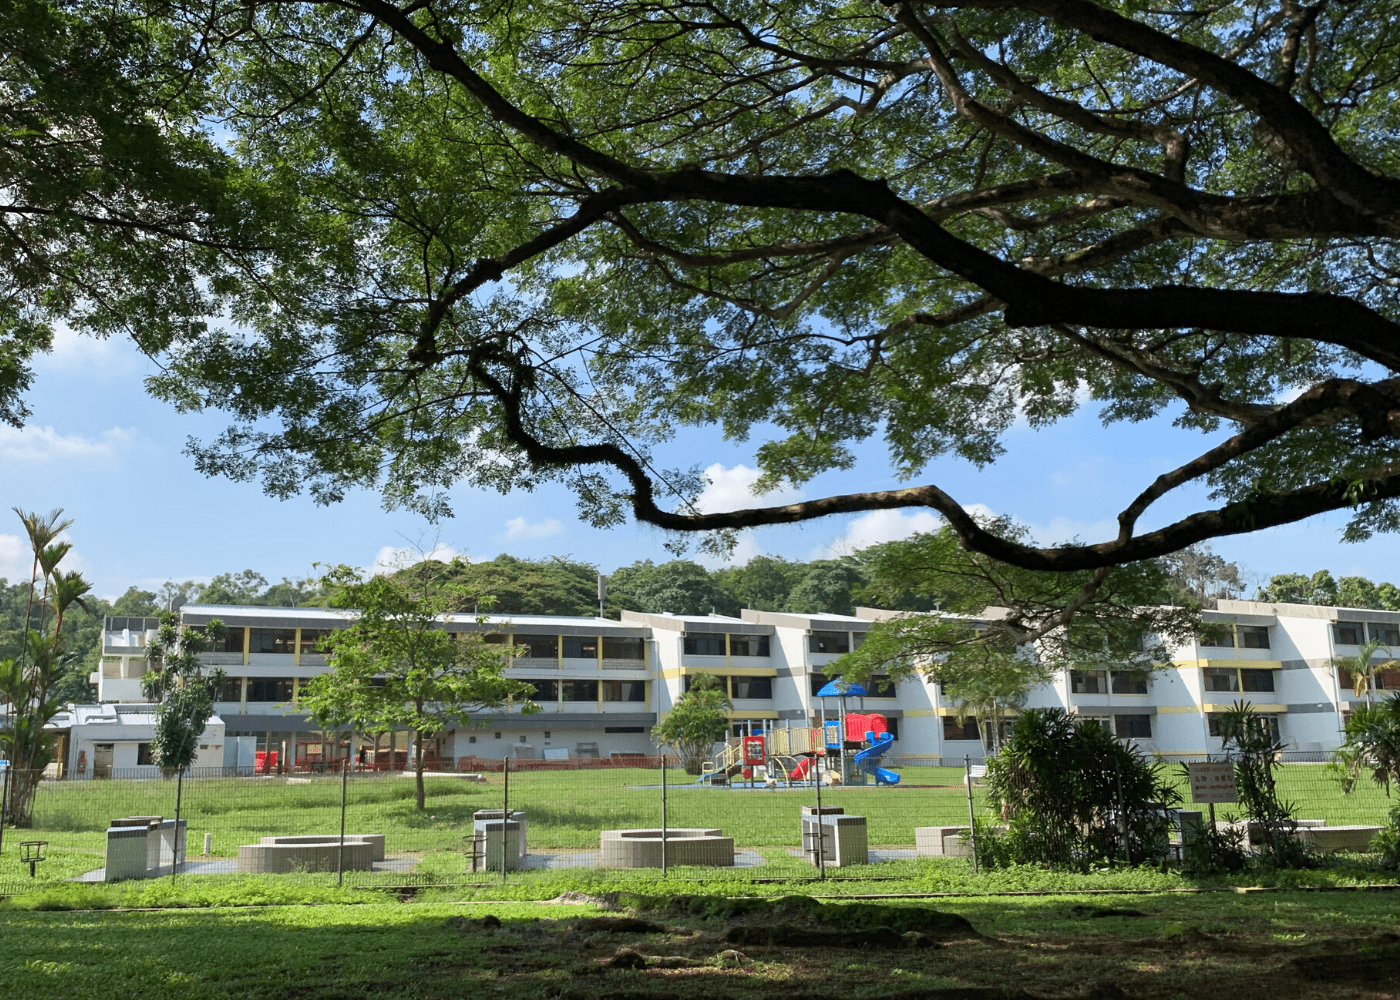 People's Association (PA) holiday flats | Pasir Ris Heritage Trail